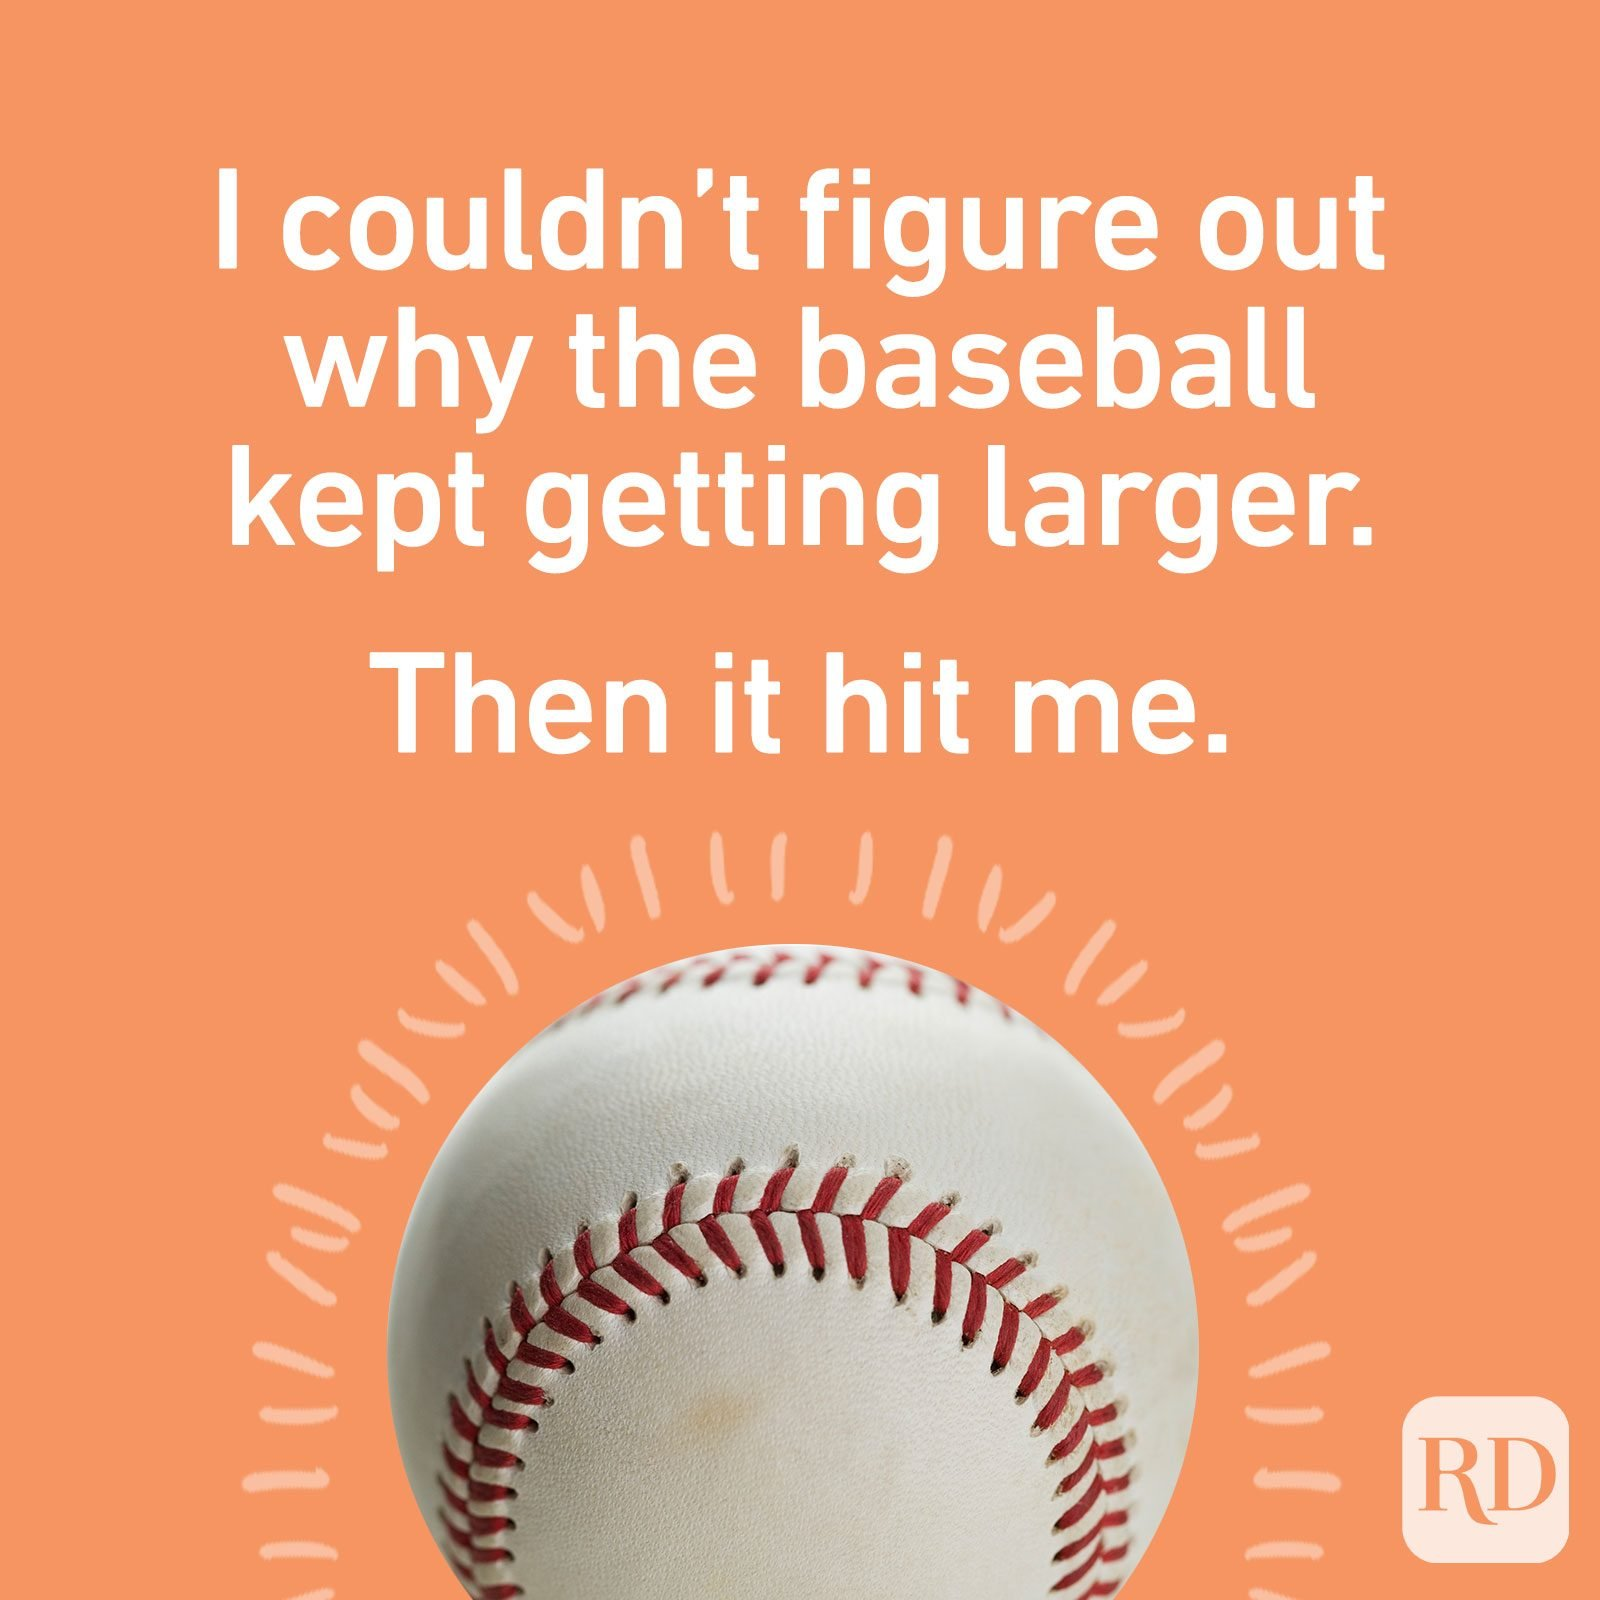 I couldn't figure out why the baseball kept getting larger. Then it hit me.